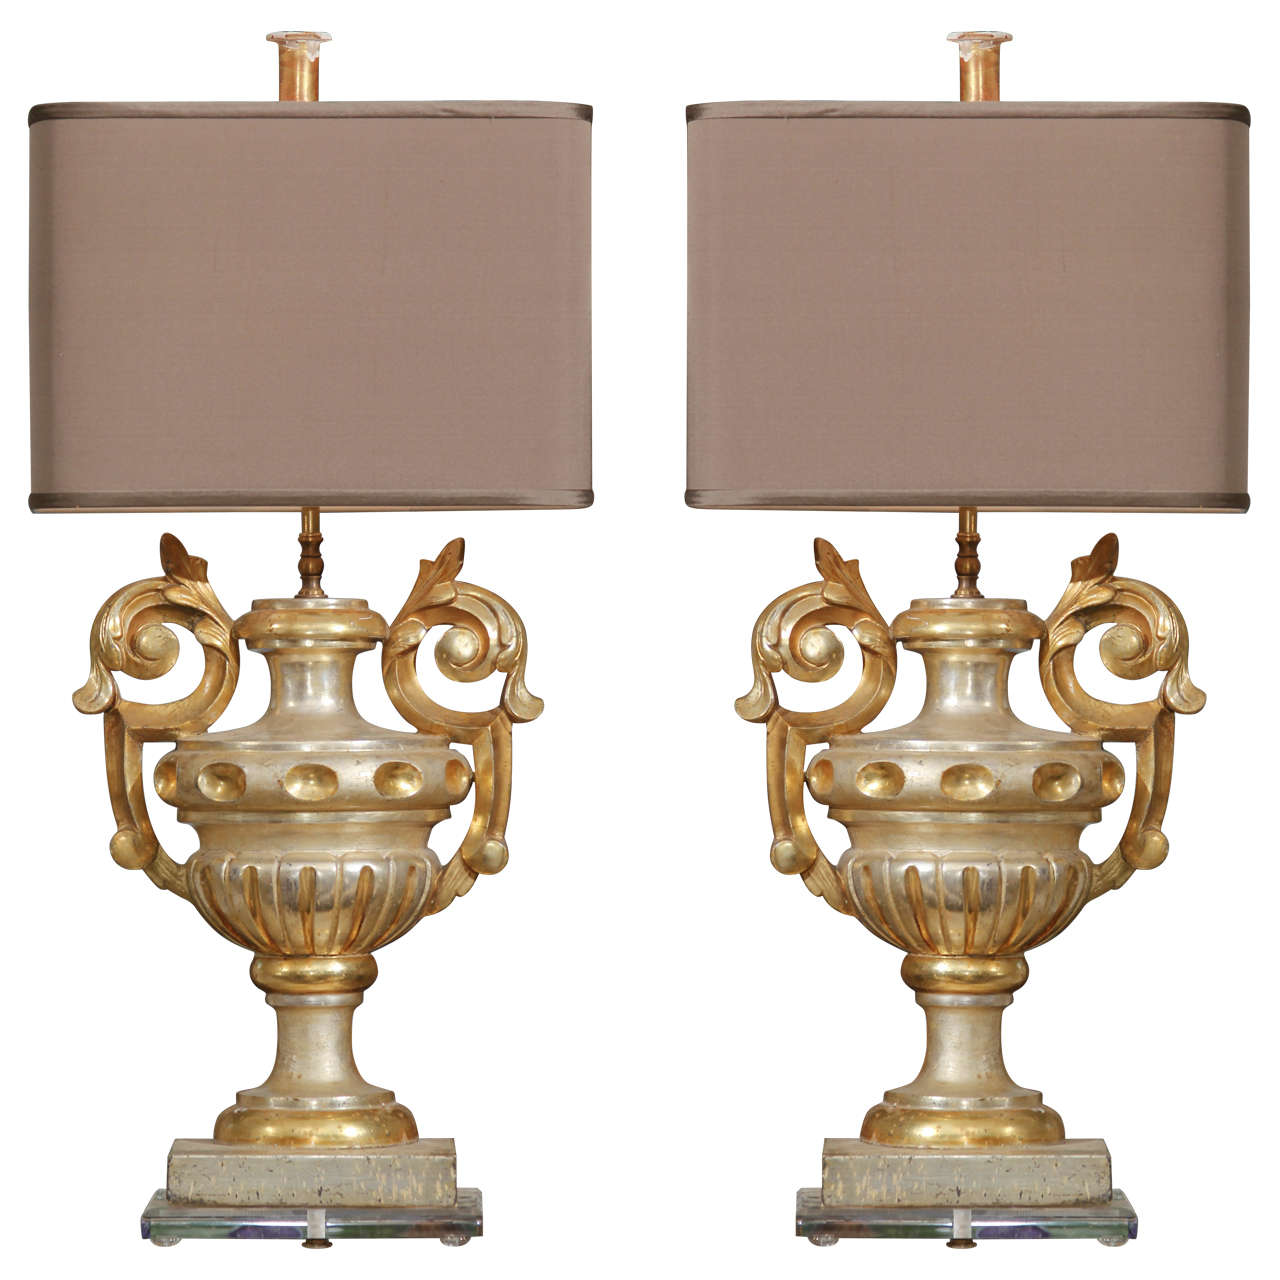 Pair of Gilded Urn Fragment Lamps For Sale